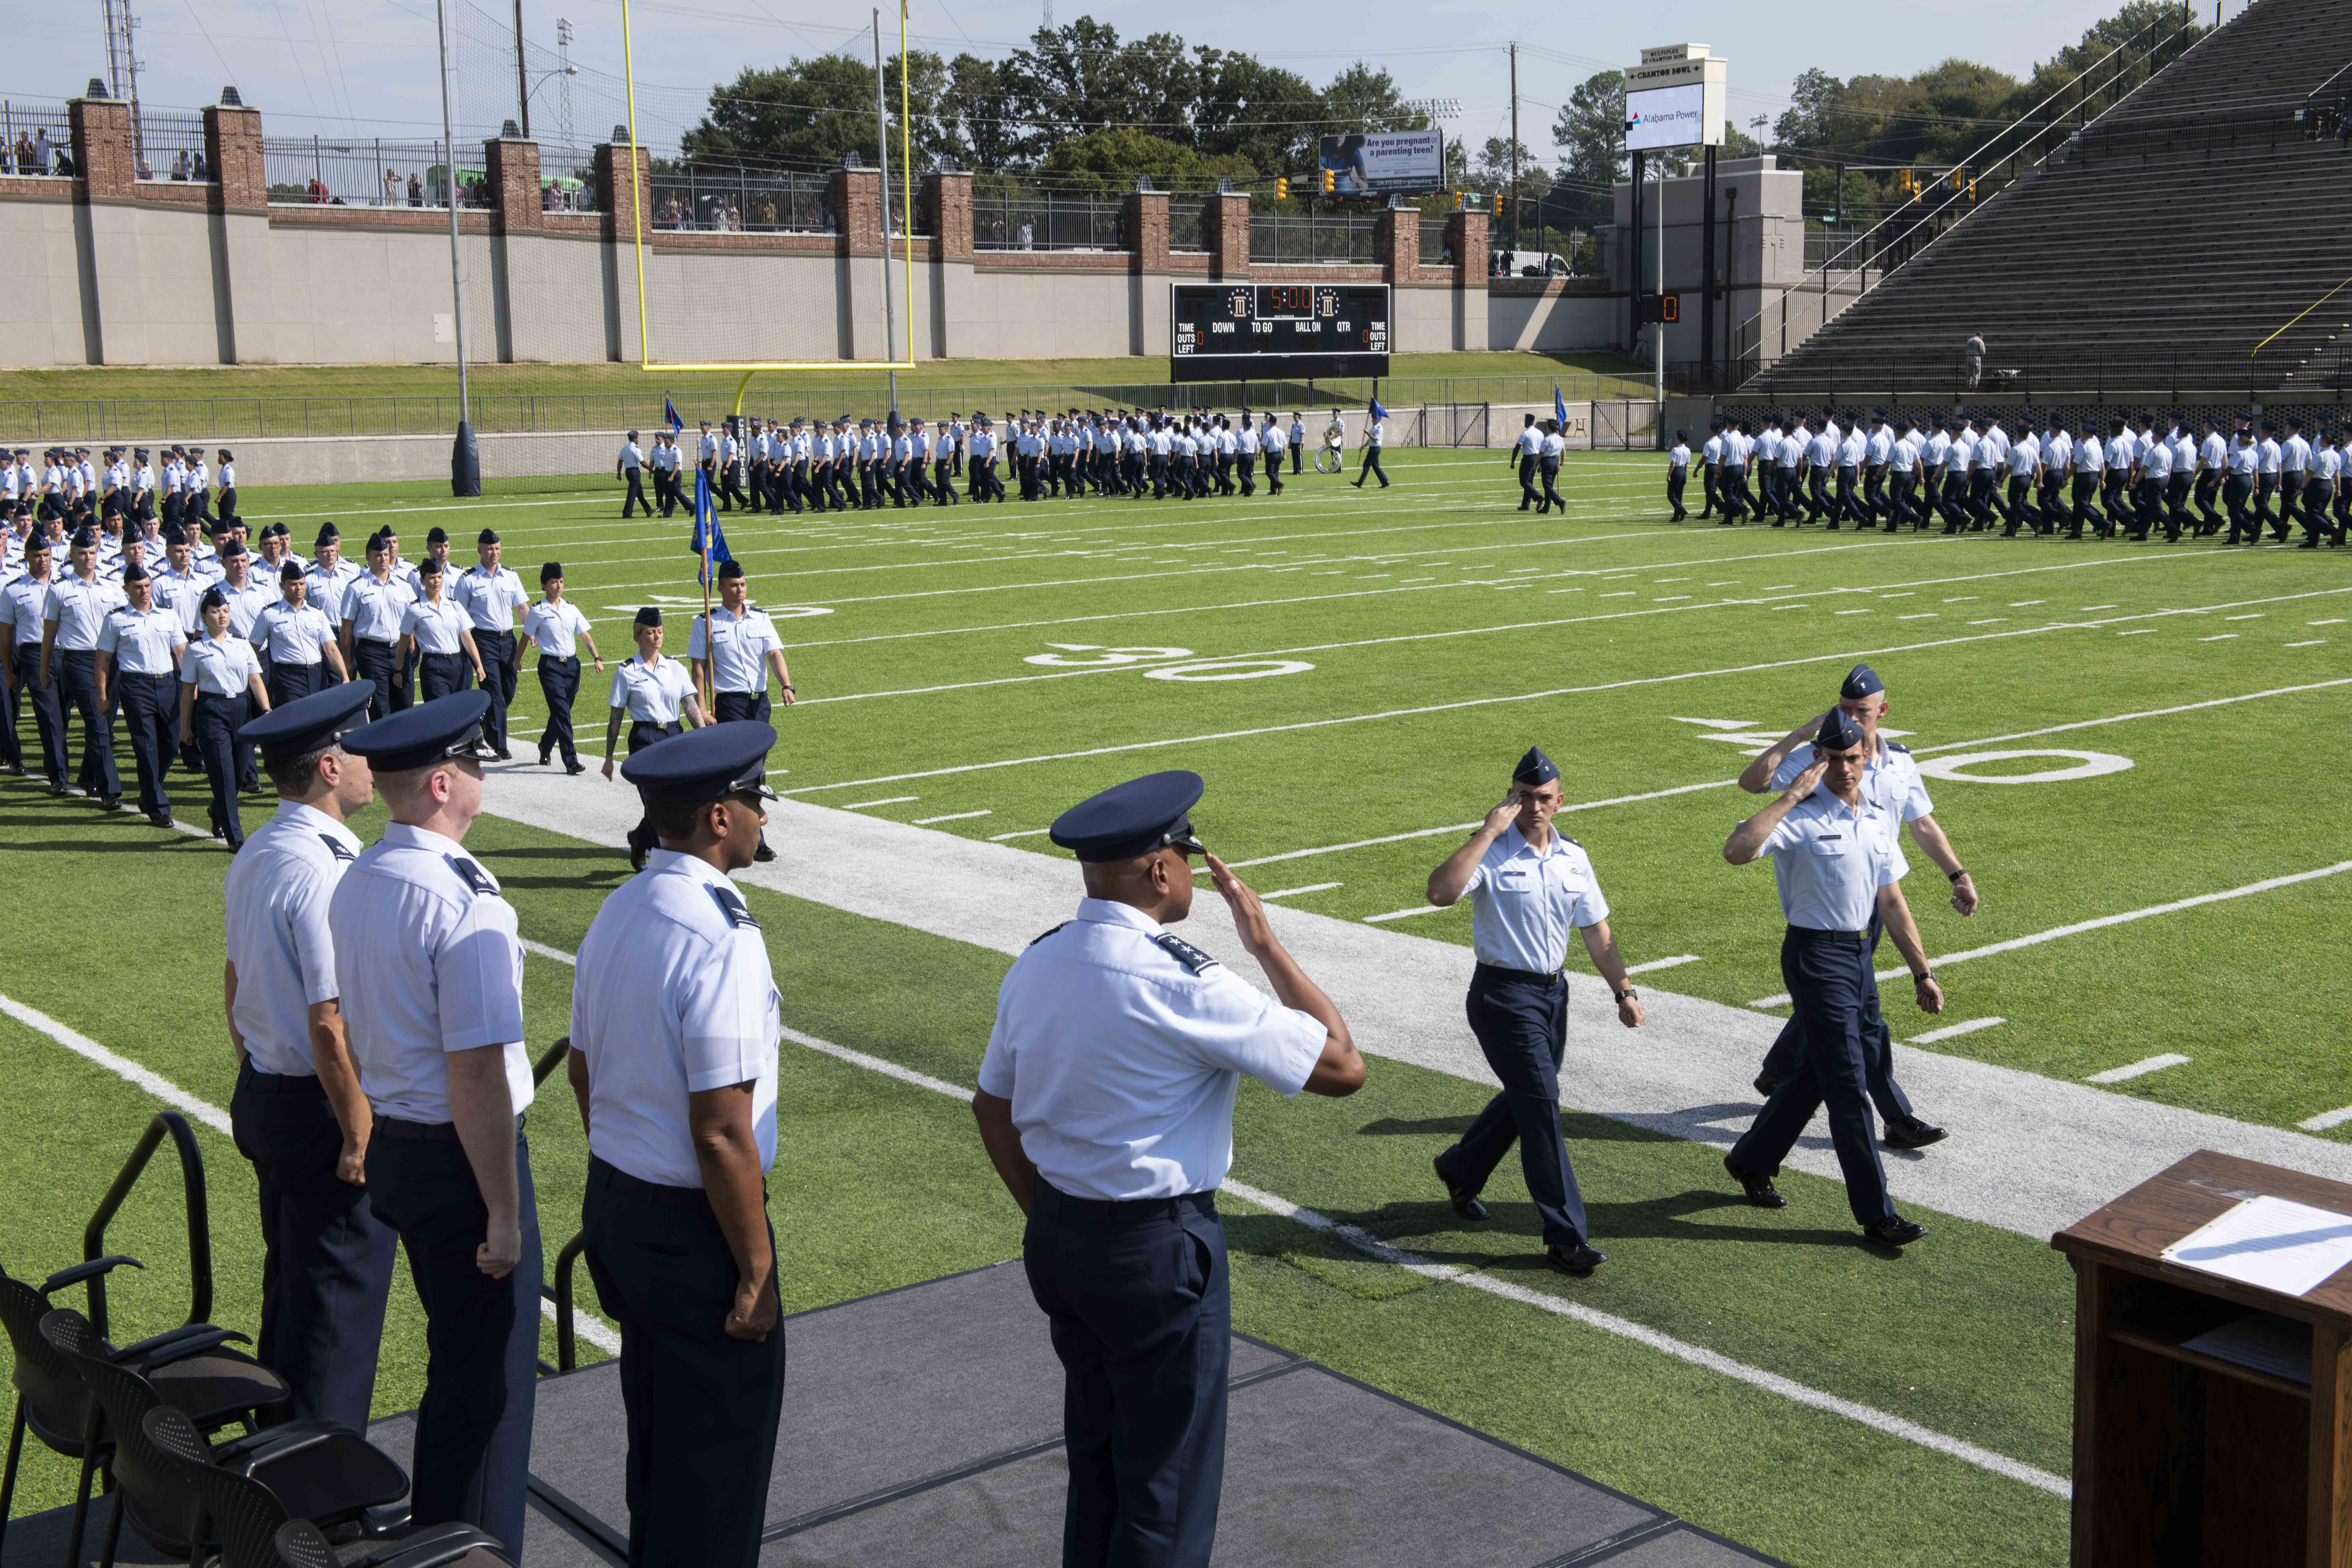 """The Air Force's newest second lieutenants perform the pass and review during their graduation ceremony at the Cramton Bowl football field Sept. 27, 2019, Montgomery, Alabama. Officer Training School's class 19-07, also known as """"Godzilla Class,"""" spent the last eight weeks taking part in a series of field training and classroom leadership exercises preparing them to become Air Force officers. (Senior Airman Alexa Culbert/Air Force)"""